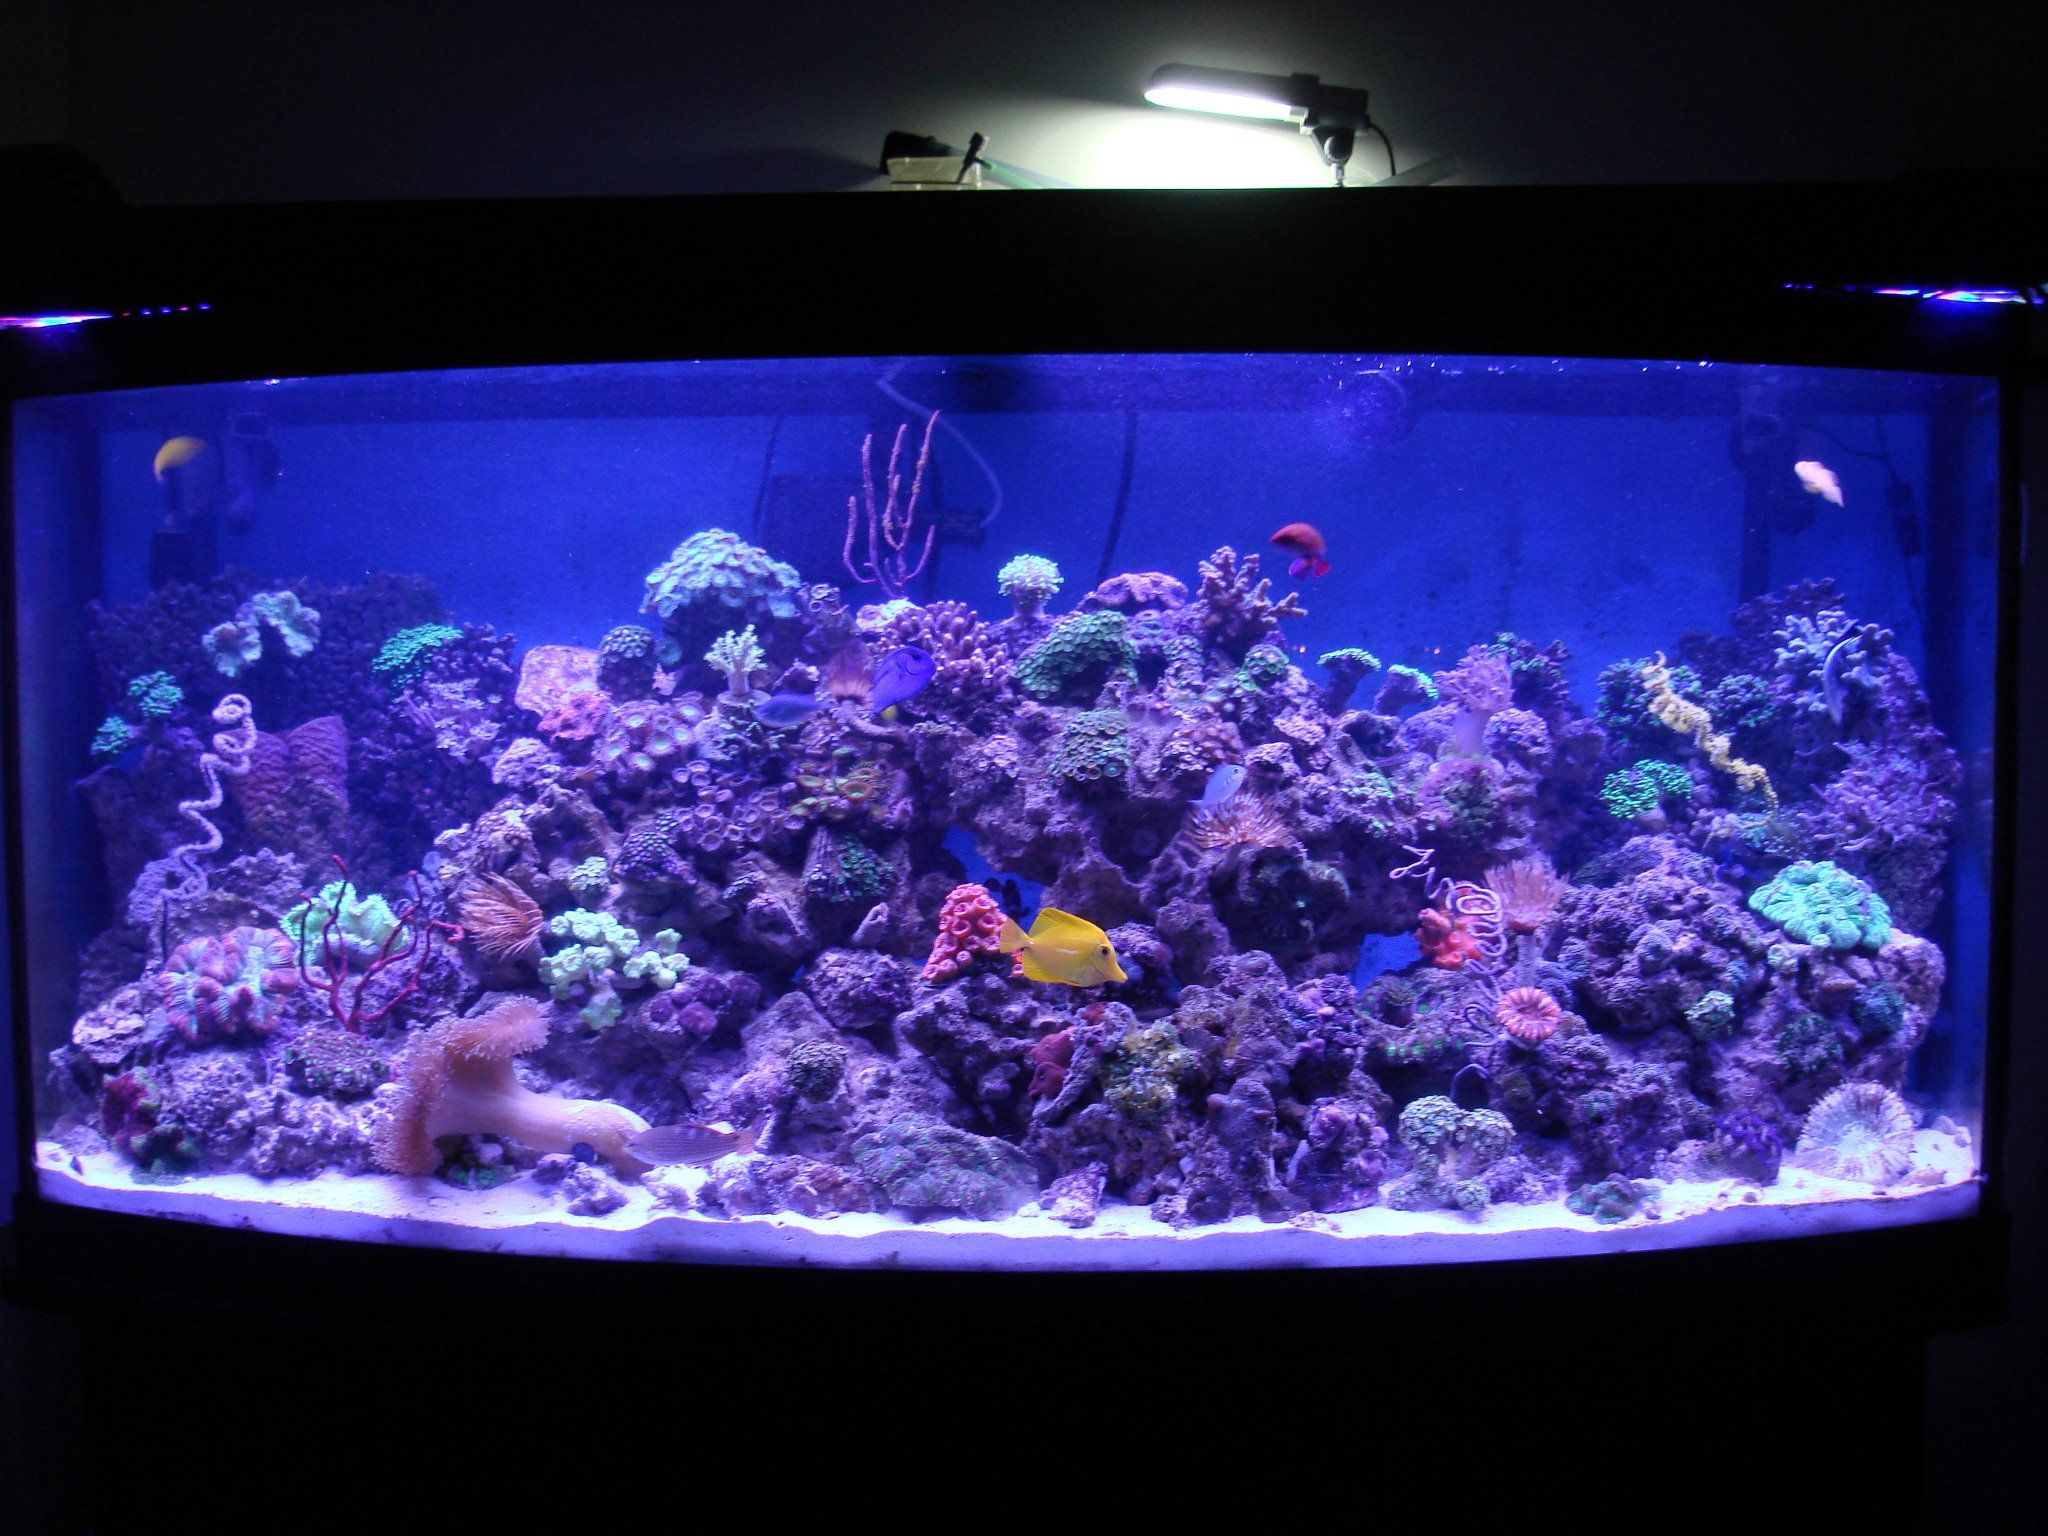 Take a look at Reef Culture s 1200 gallon display tank illuminated